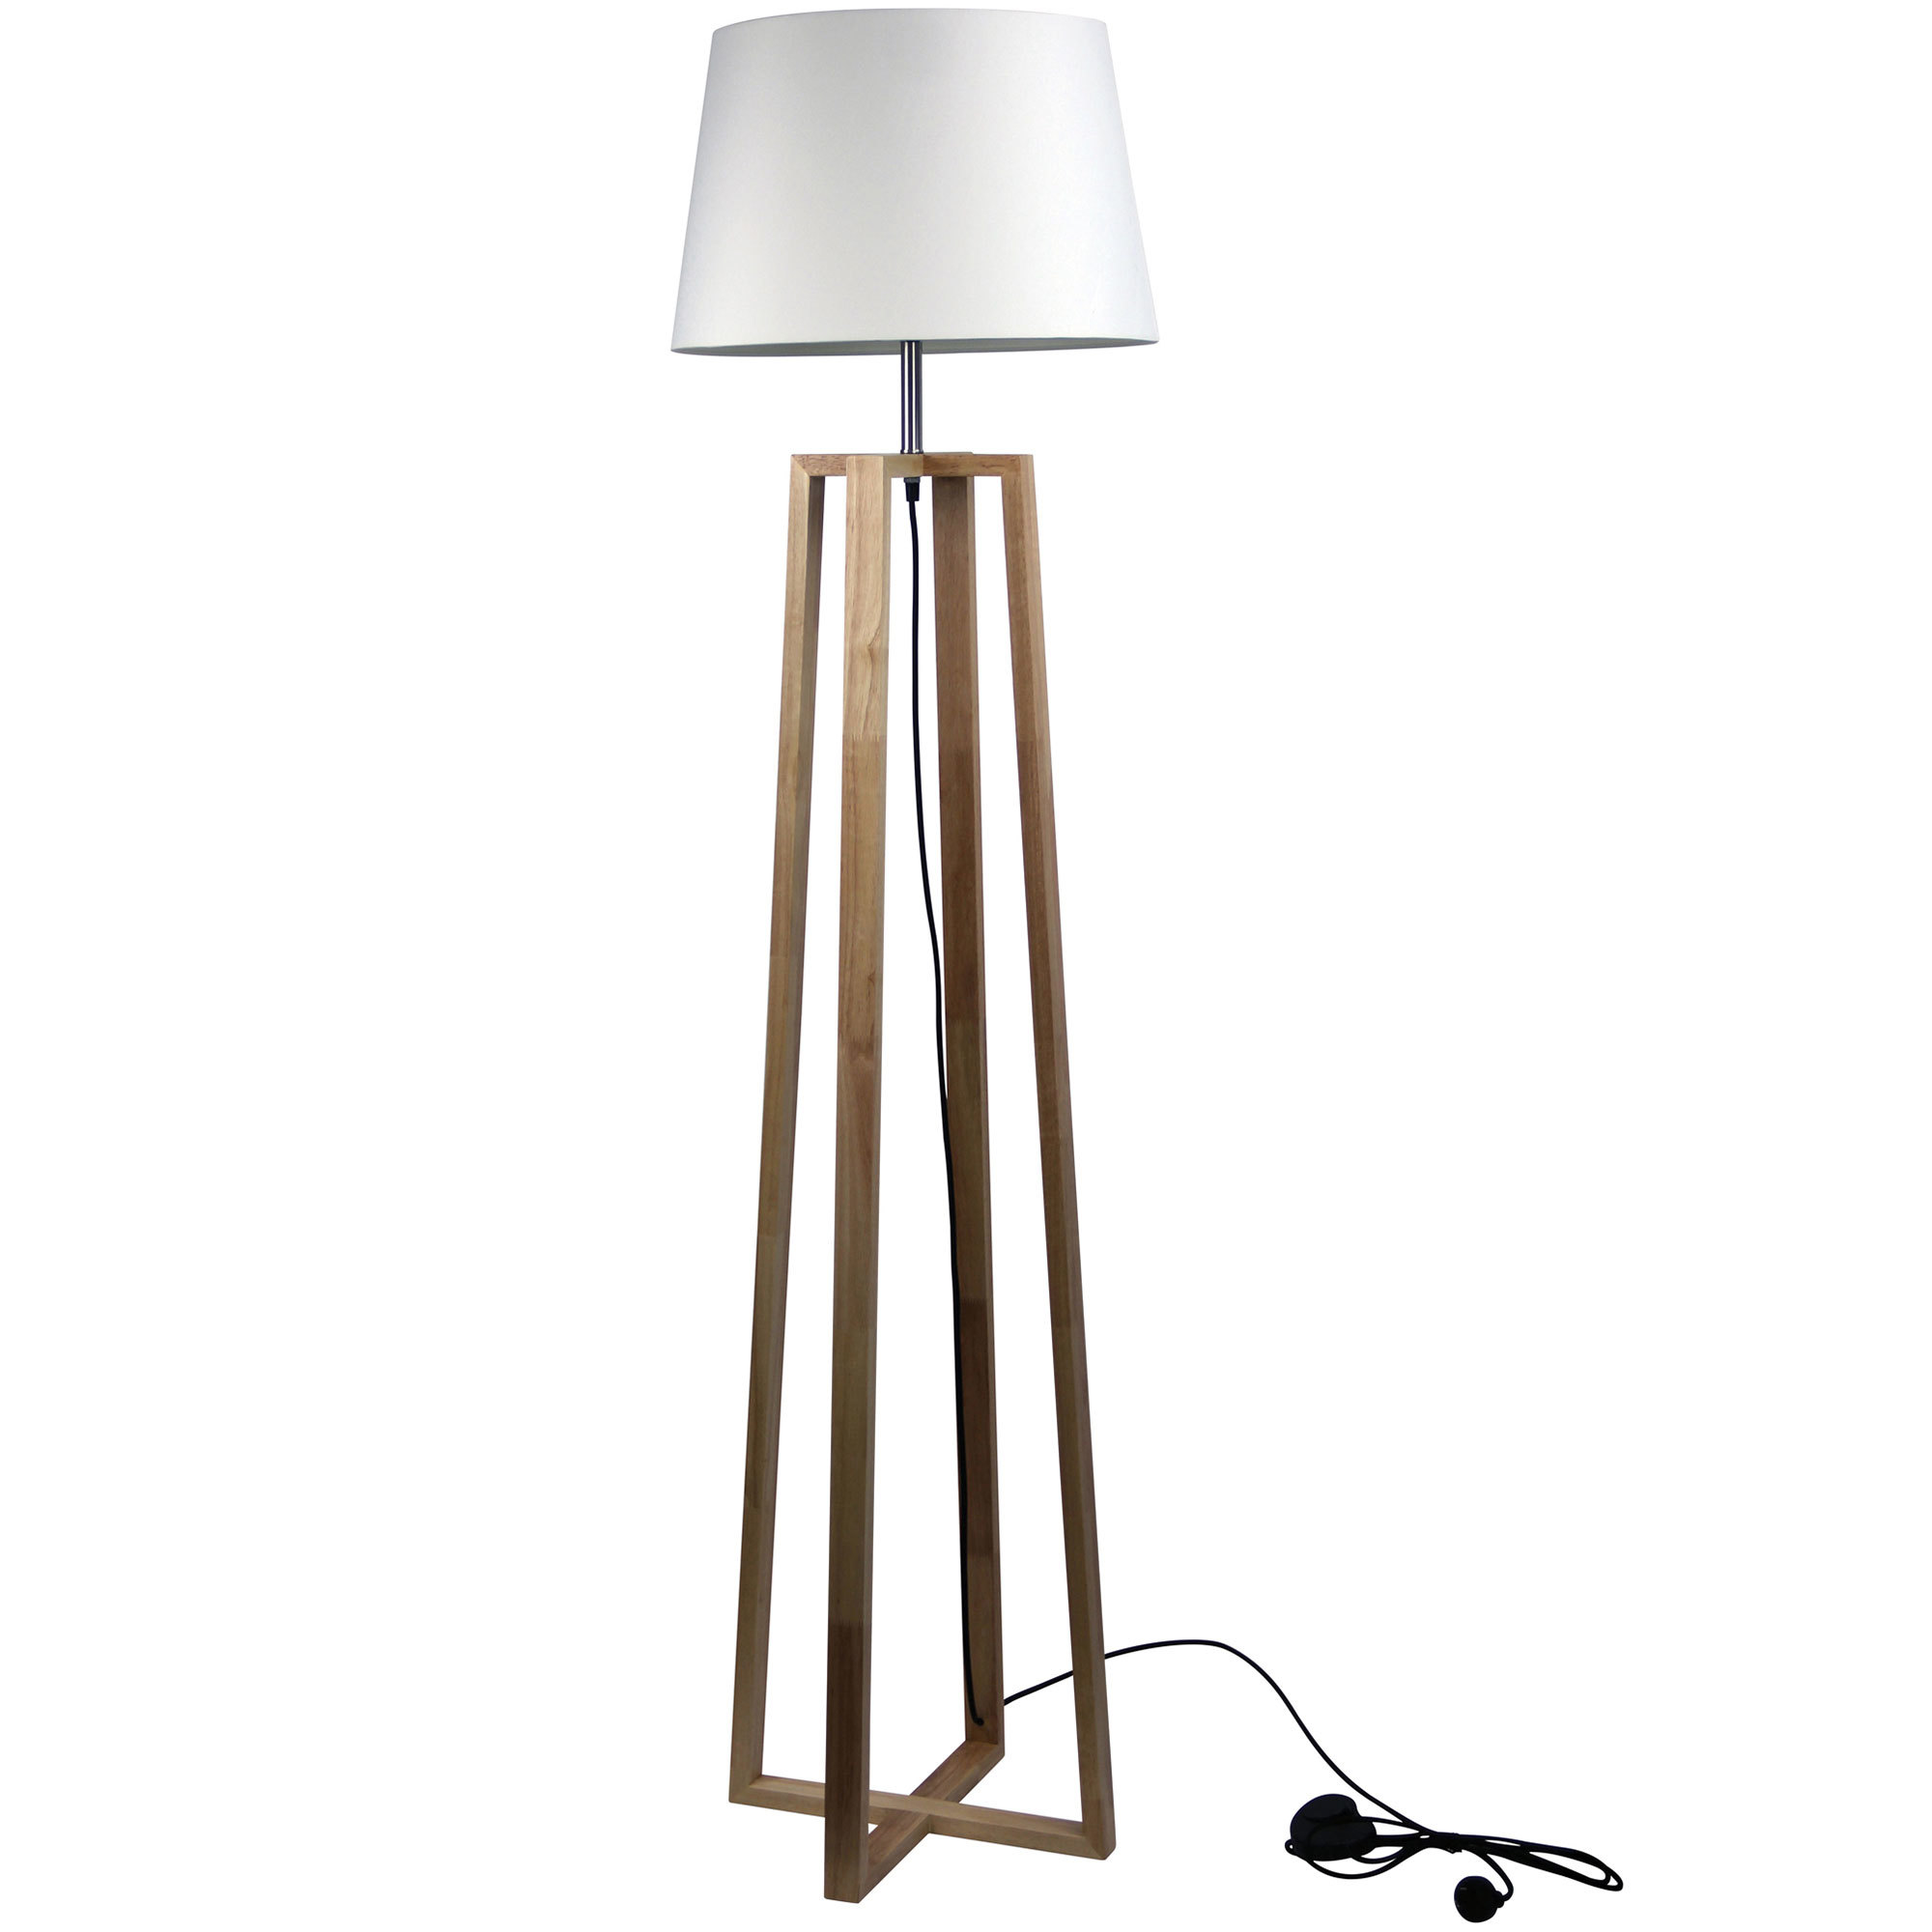 Malmo Timber Floor Lamps | Temple & Webster